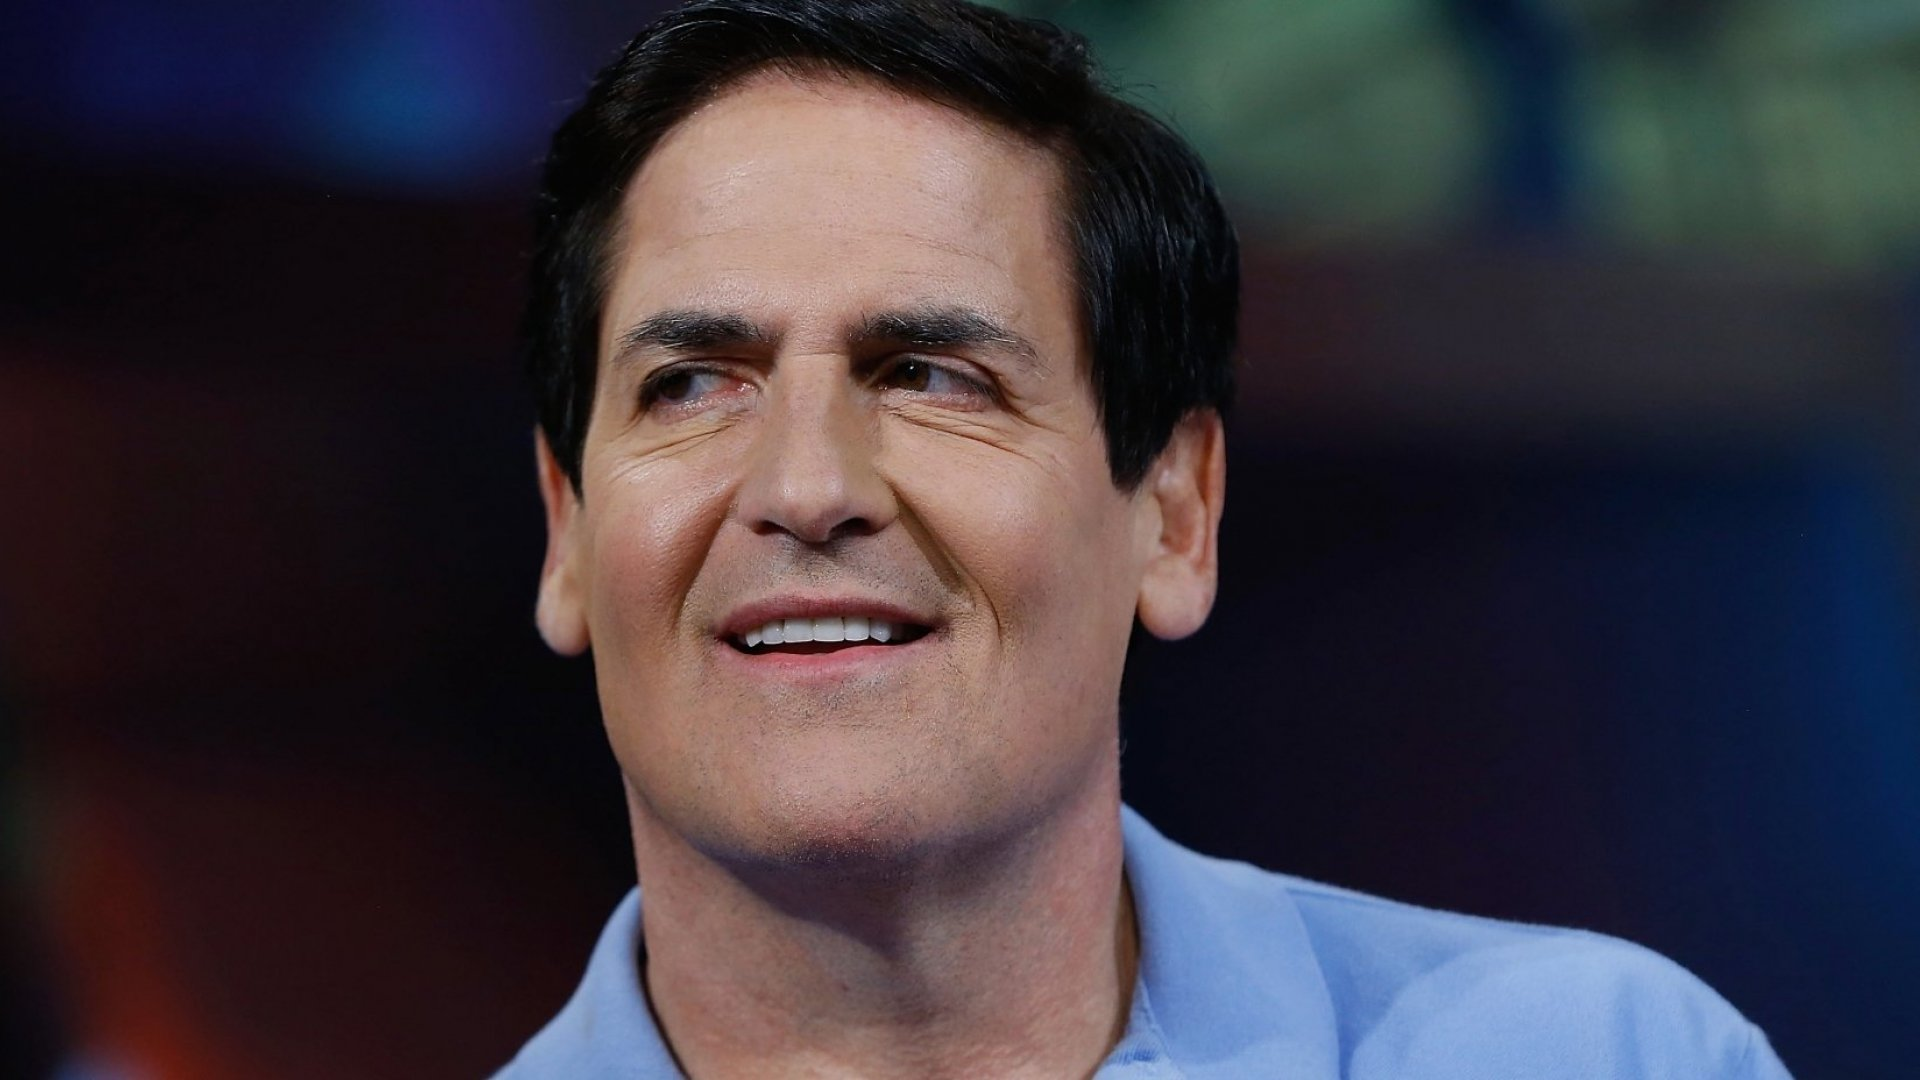 Investor and Dallas Mavericks owner Mark Cuban